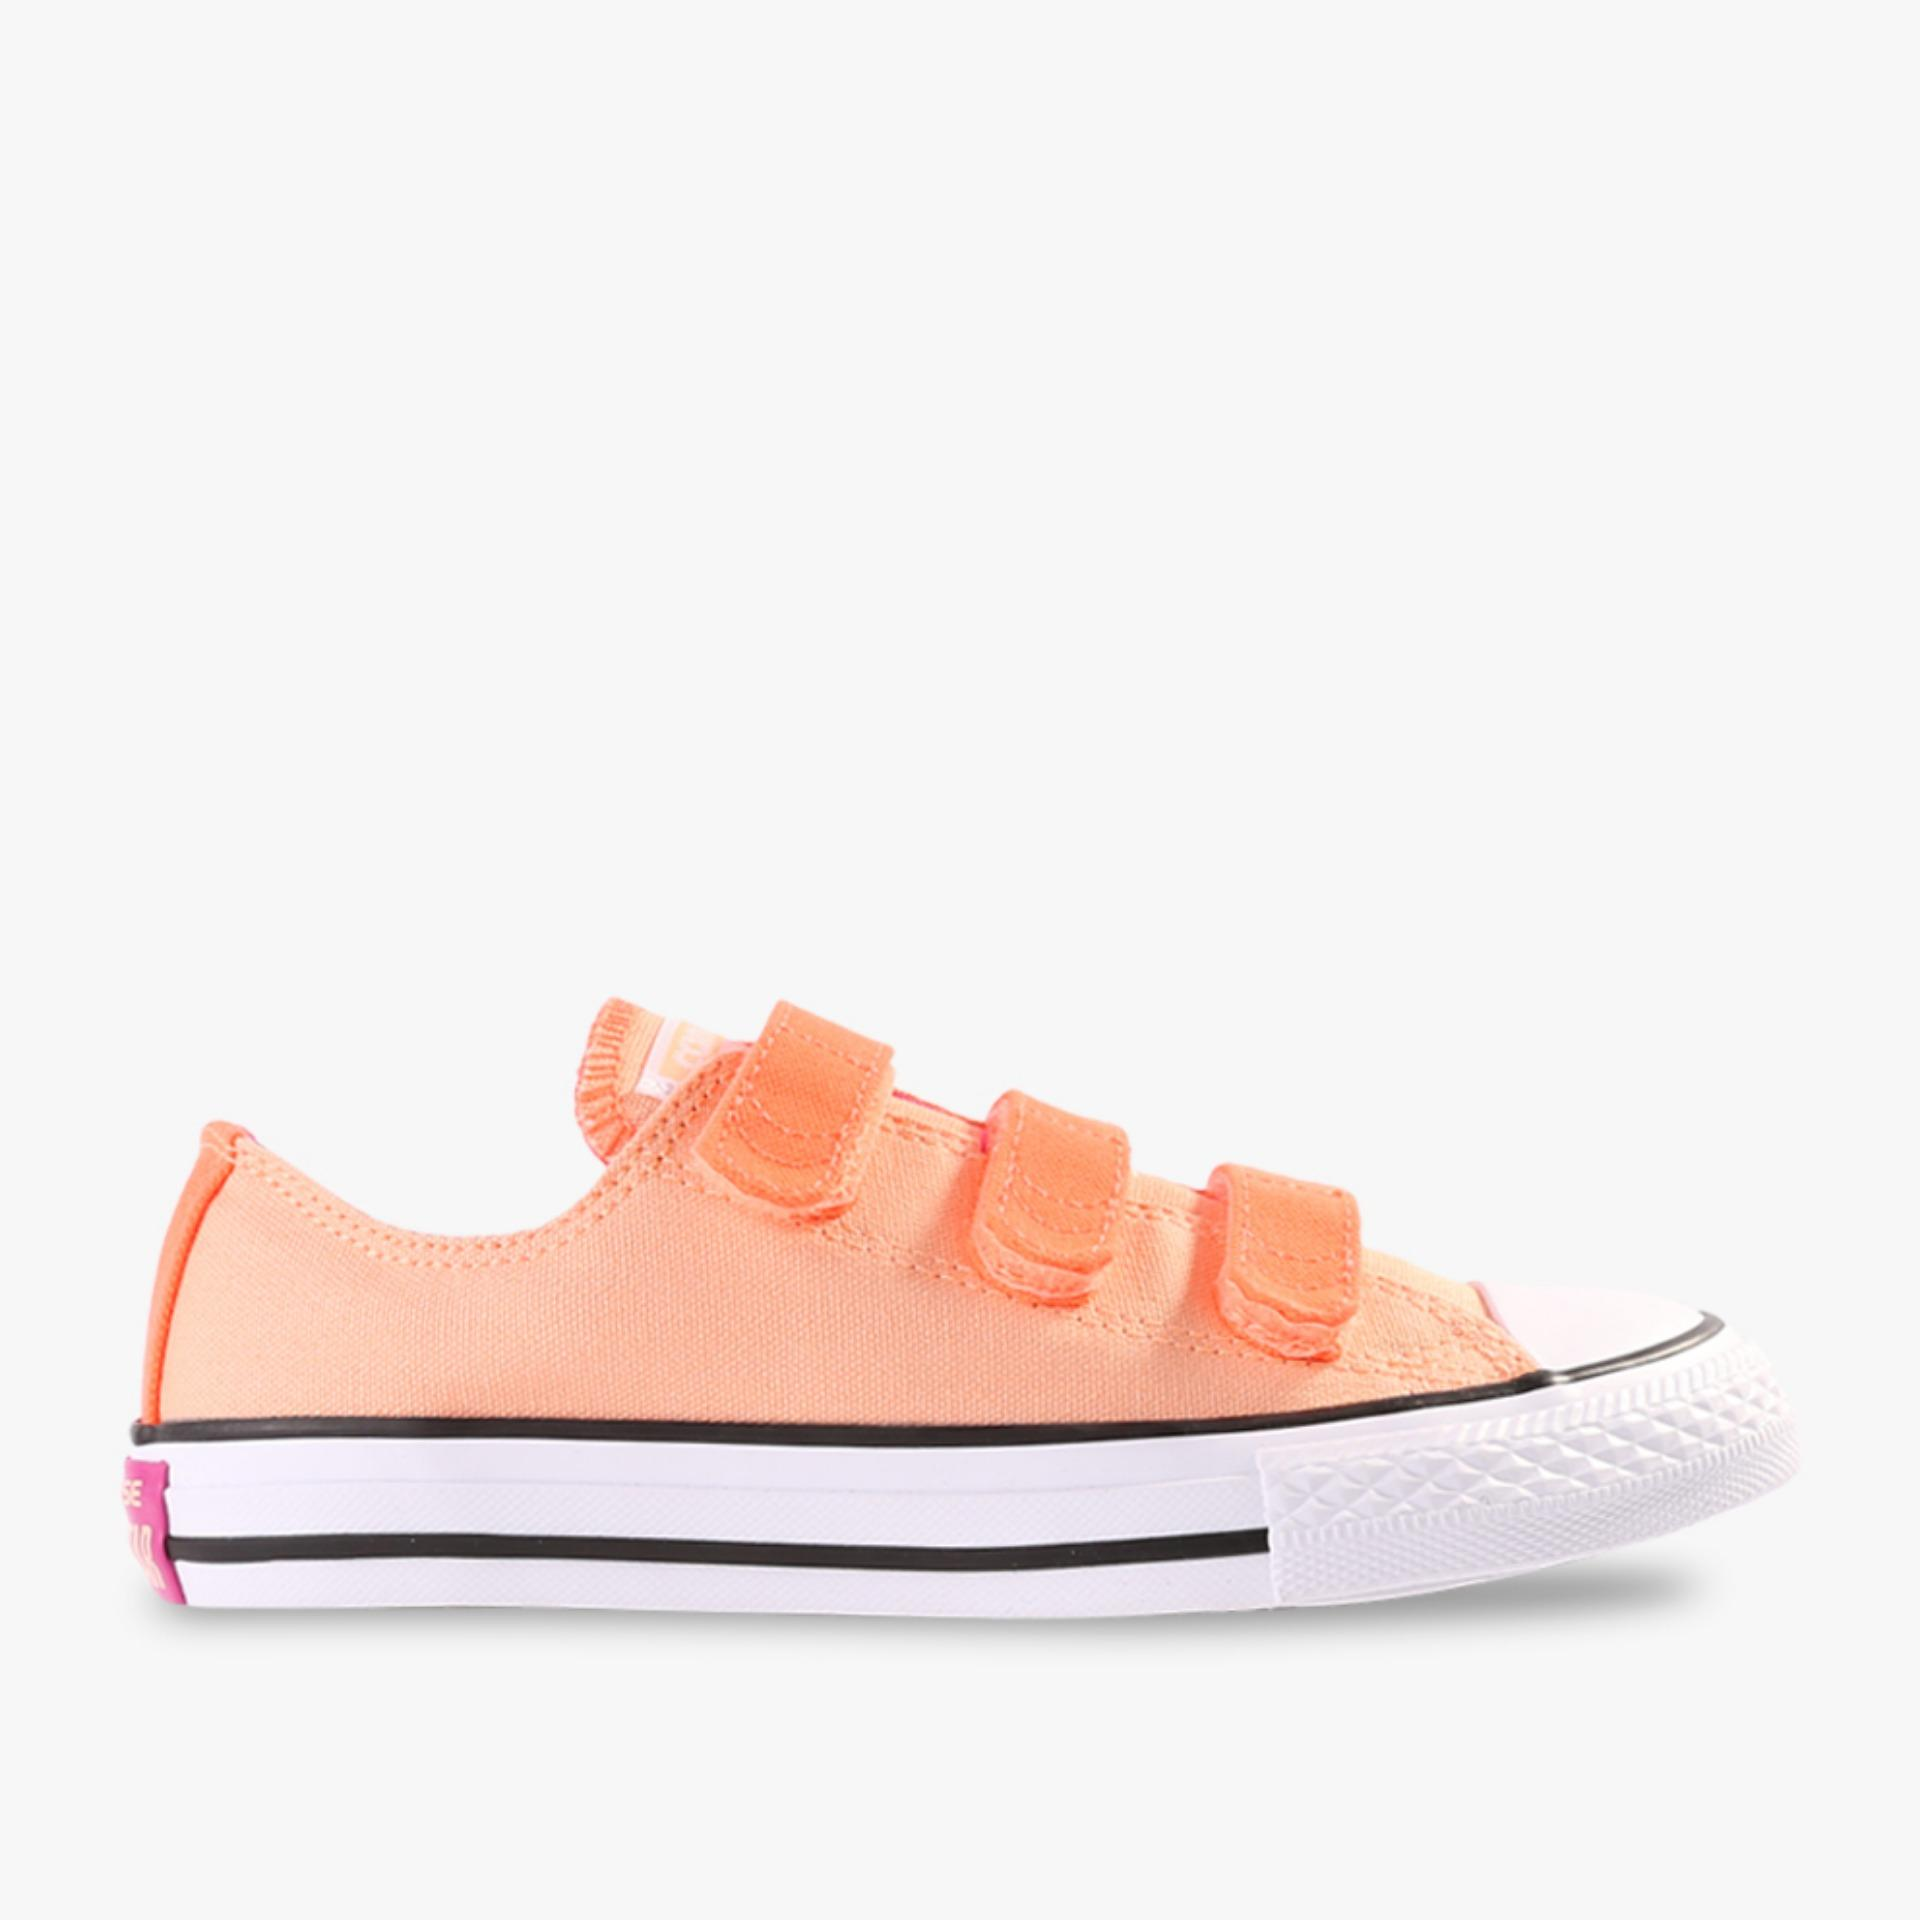 Toko Converse Chuck Taylor All Star 3V Ox Kids Sneakers Oranye Indonesia